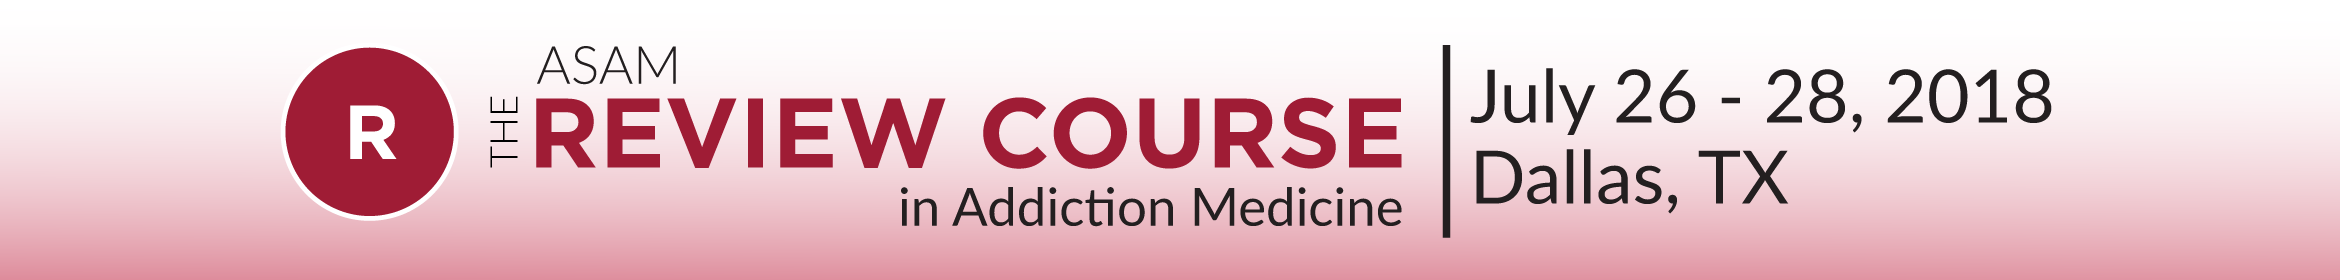 The ASAM Review Course in Addiction Medicine 2018 Main banner